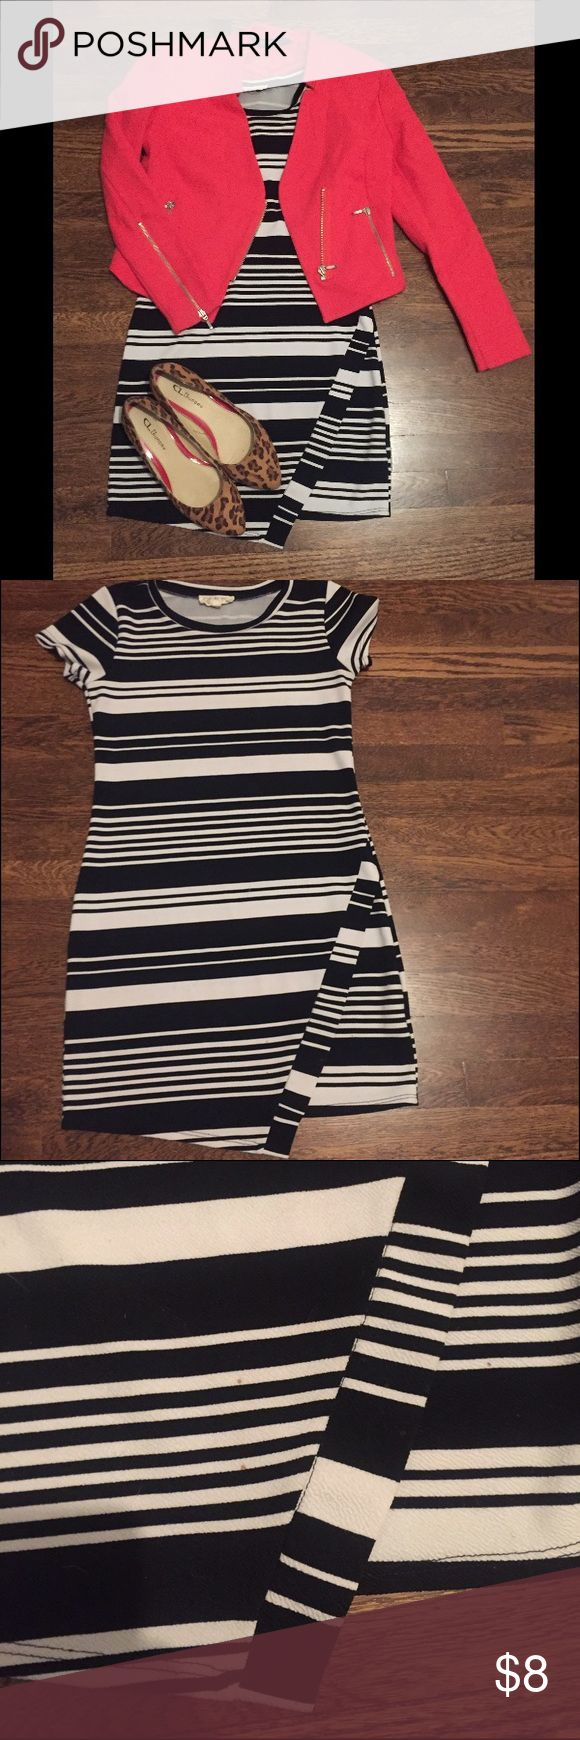 Black and white striped envelope dress- Sz M You don't have to spend a ton of money to be stylish! This black and white envelope style dress is perfect for a night out! There is a time stain near the bottom of the dress- priced to reflect that. Dresses Mini